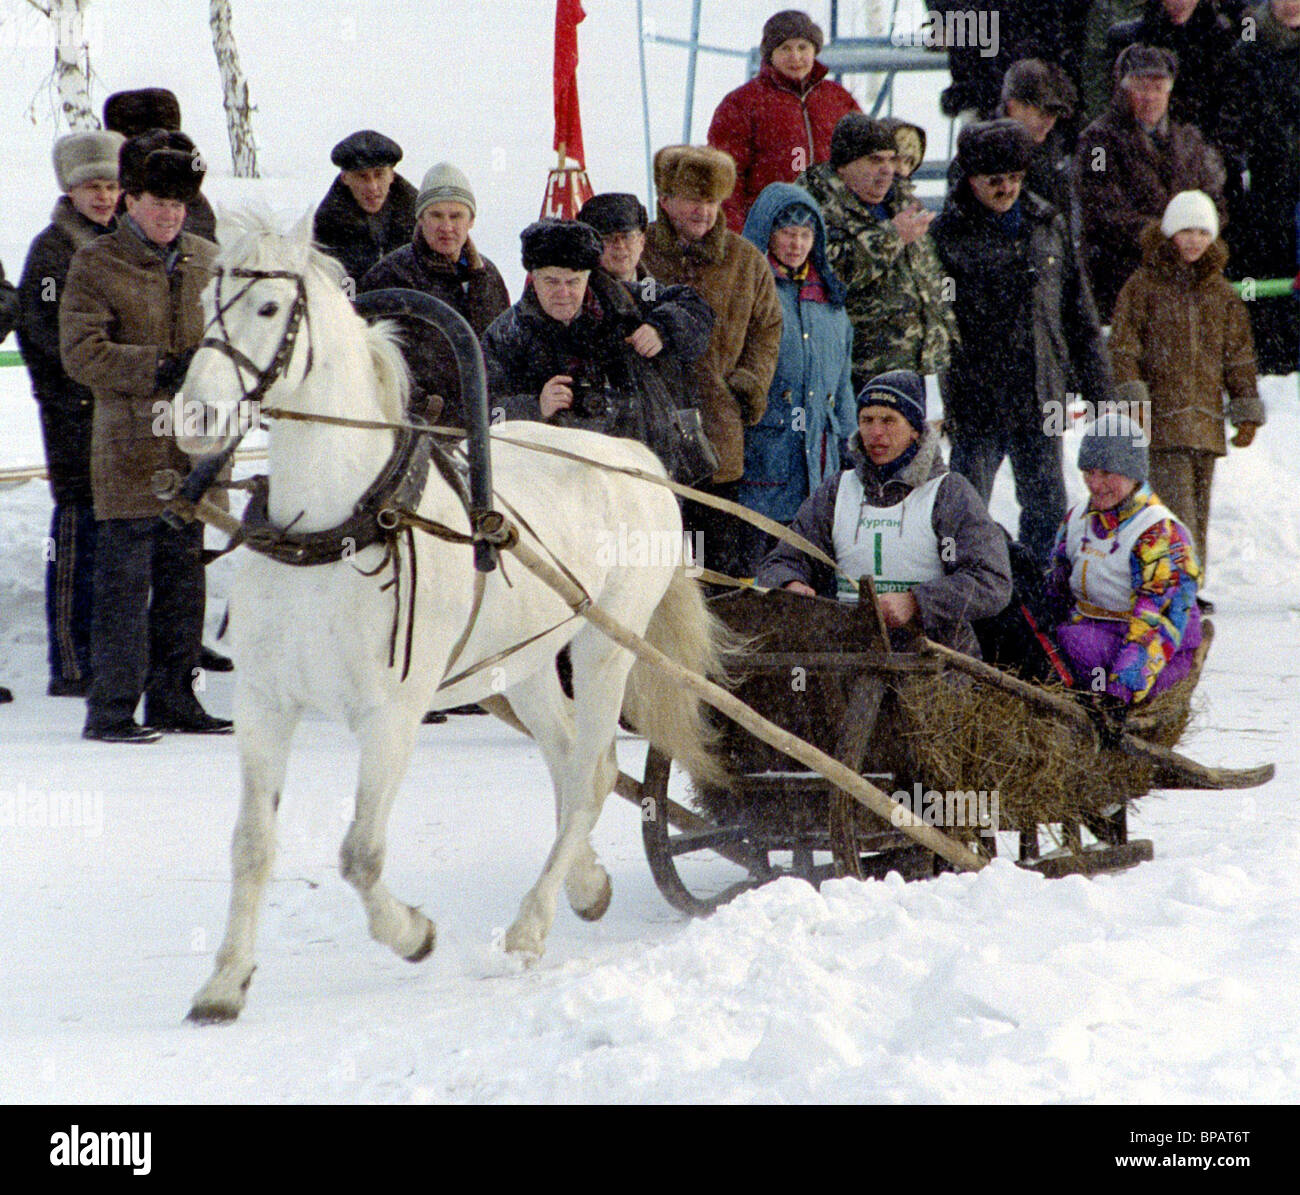 Winter Rural Sports Games held in the Urals Federal District - Stock Image